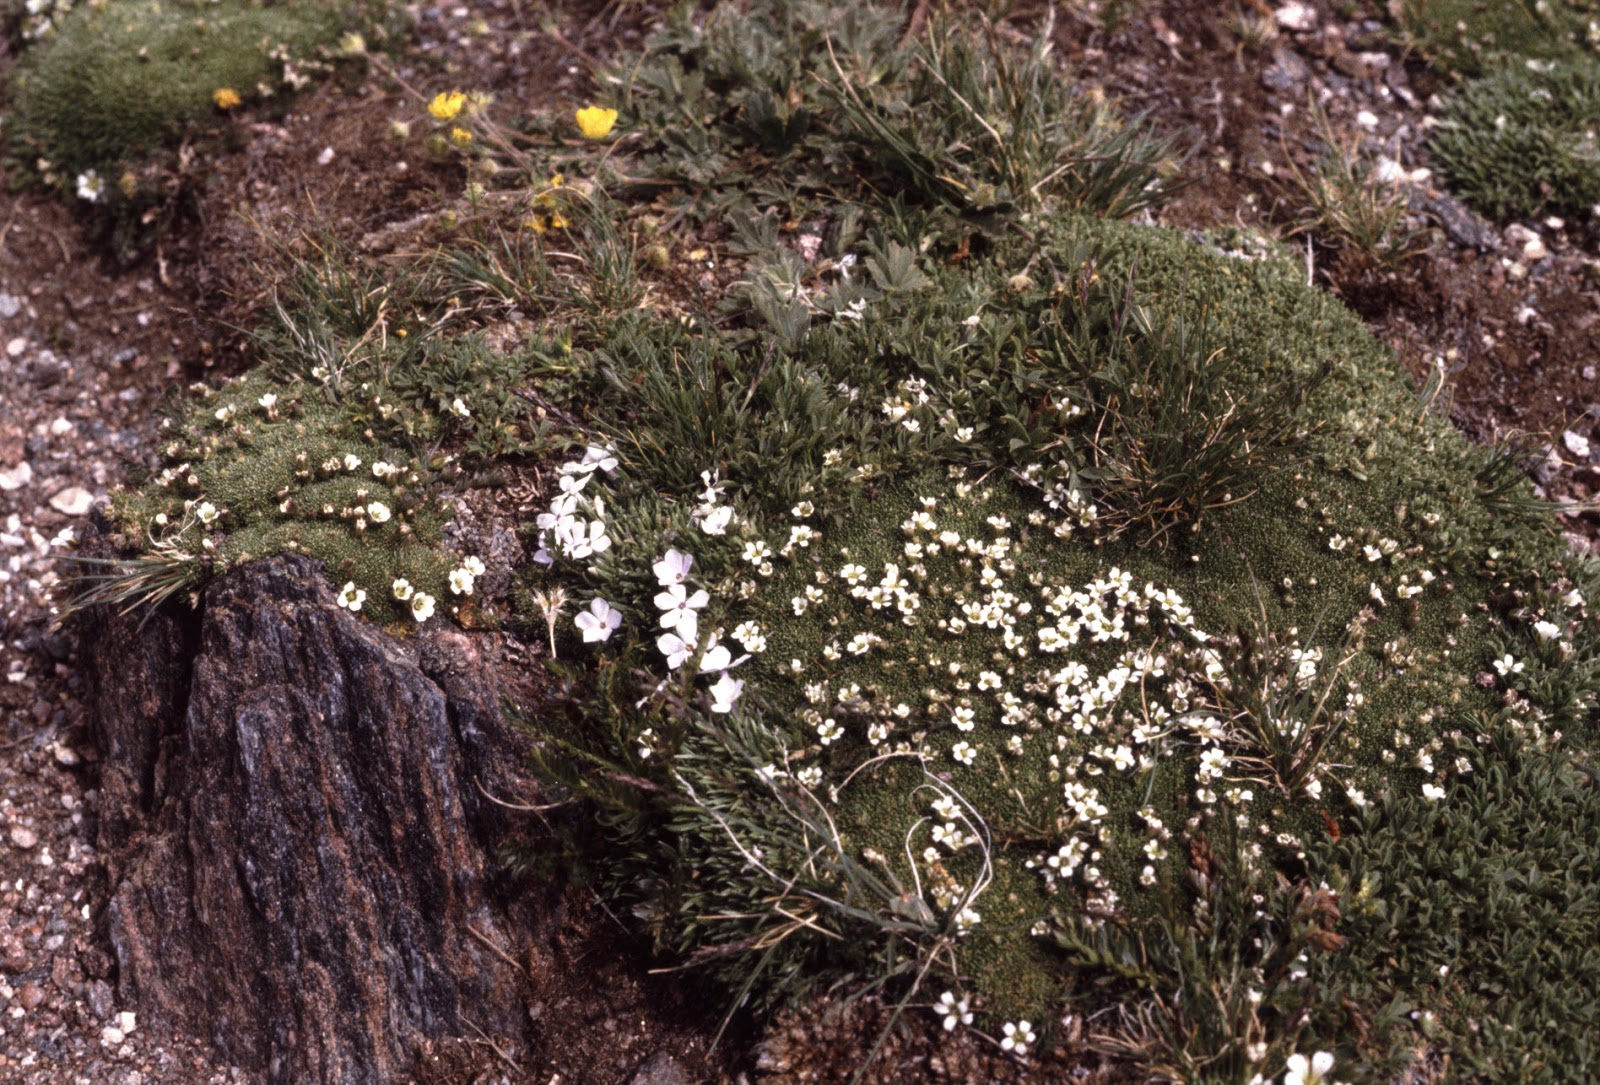 Flowers close to the rock